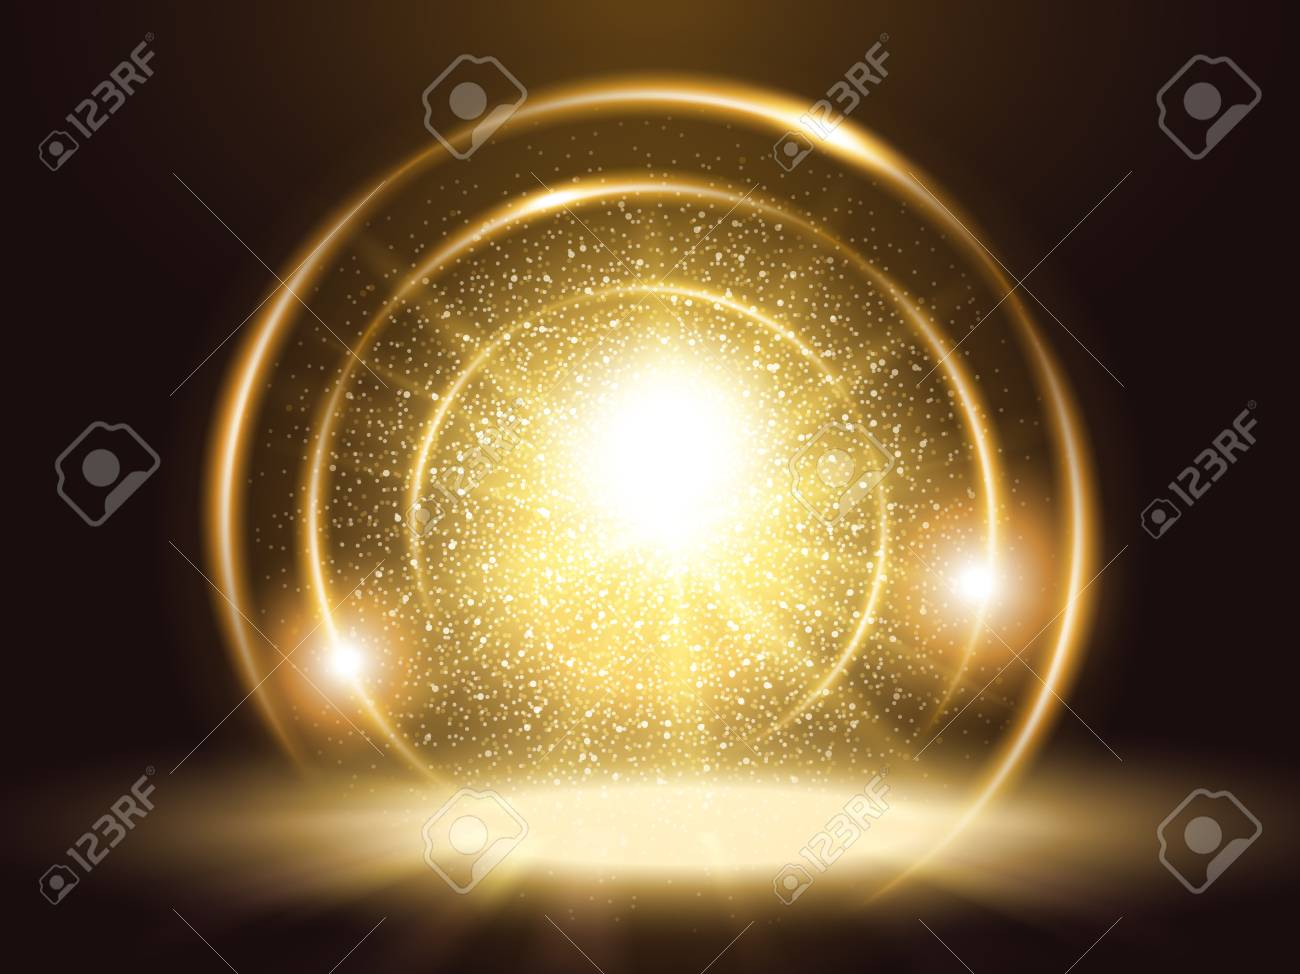 Sparkling particles and rings, attractive golden color glitter element for design uses - 94128746